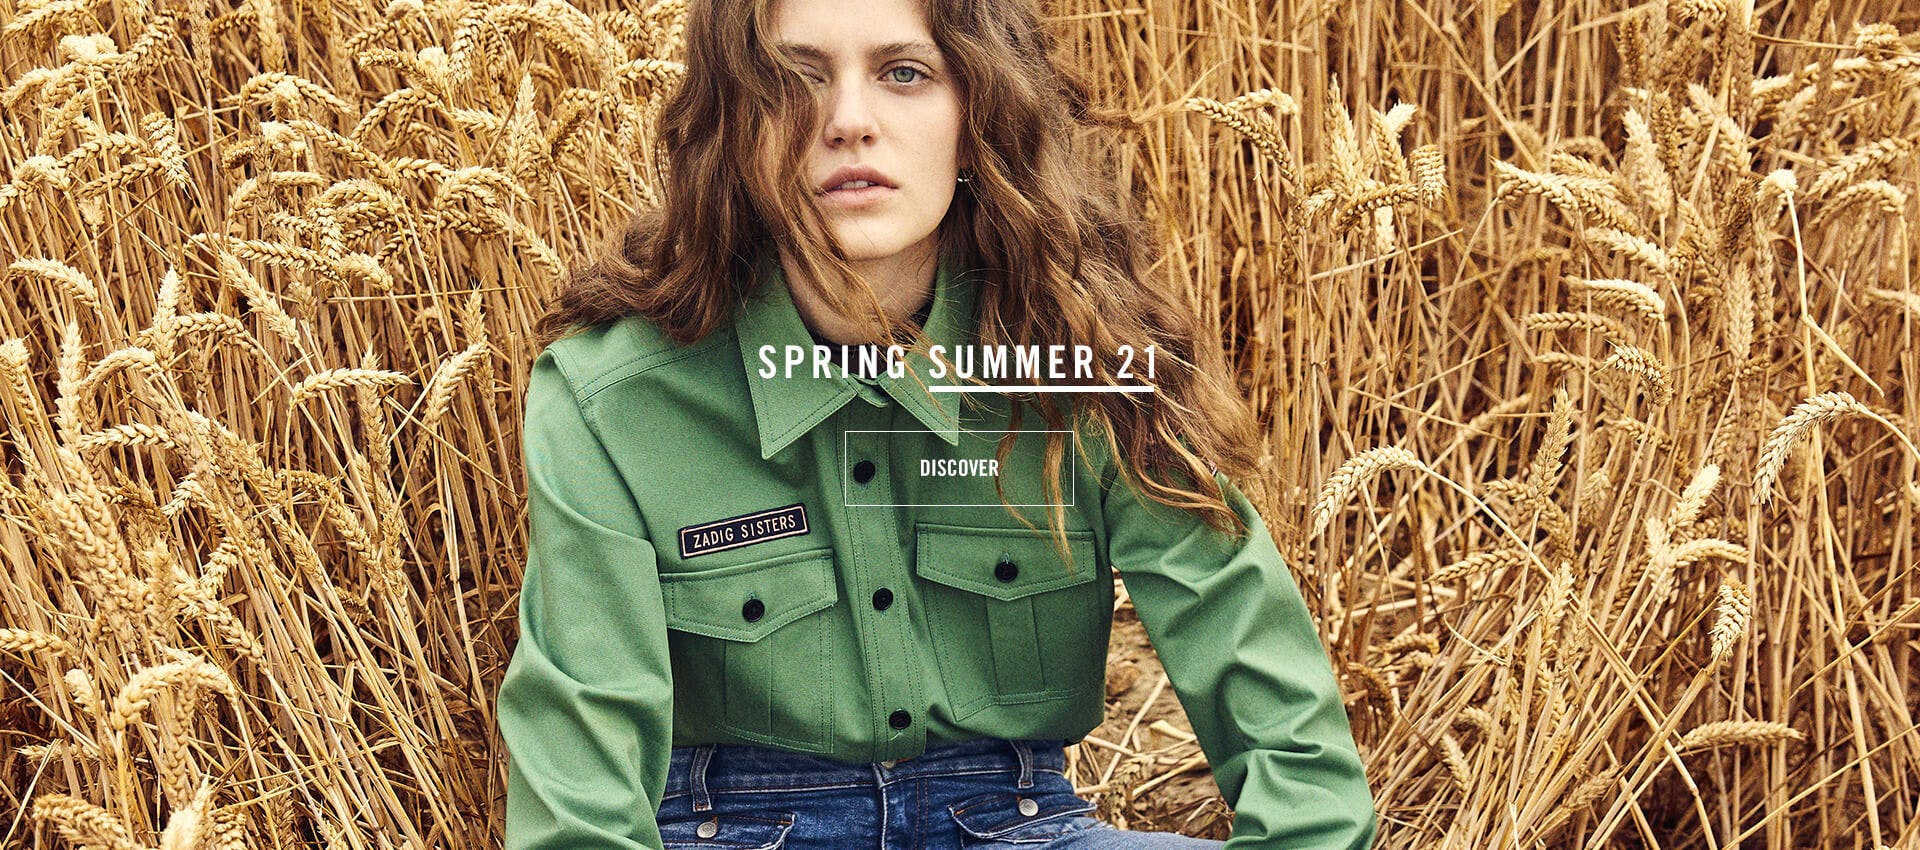 SS21 New Collection January 2021